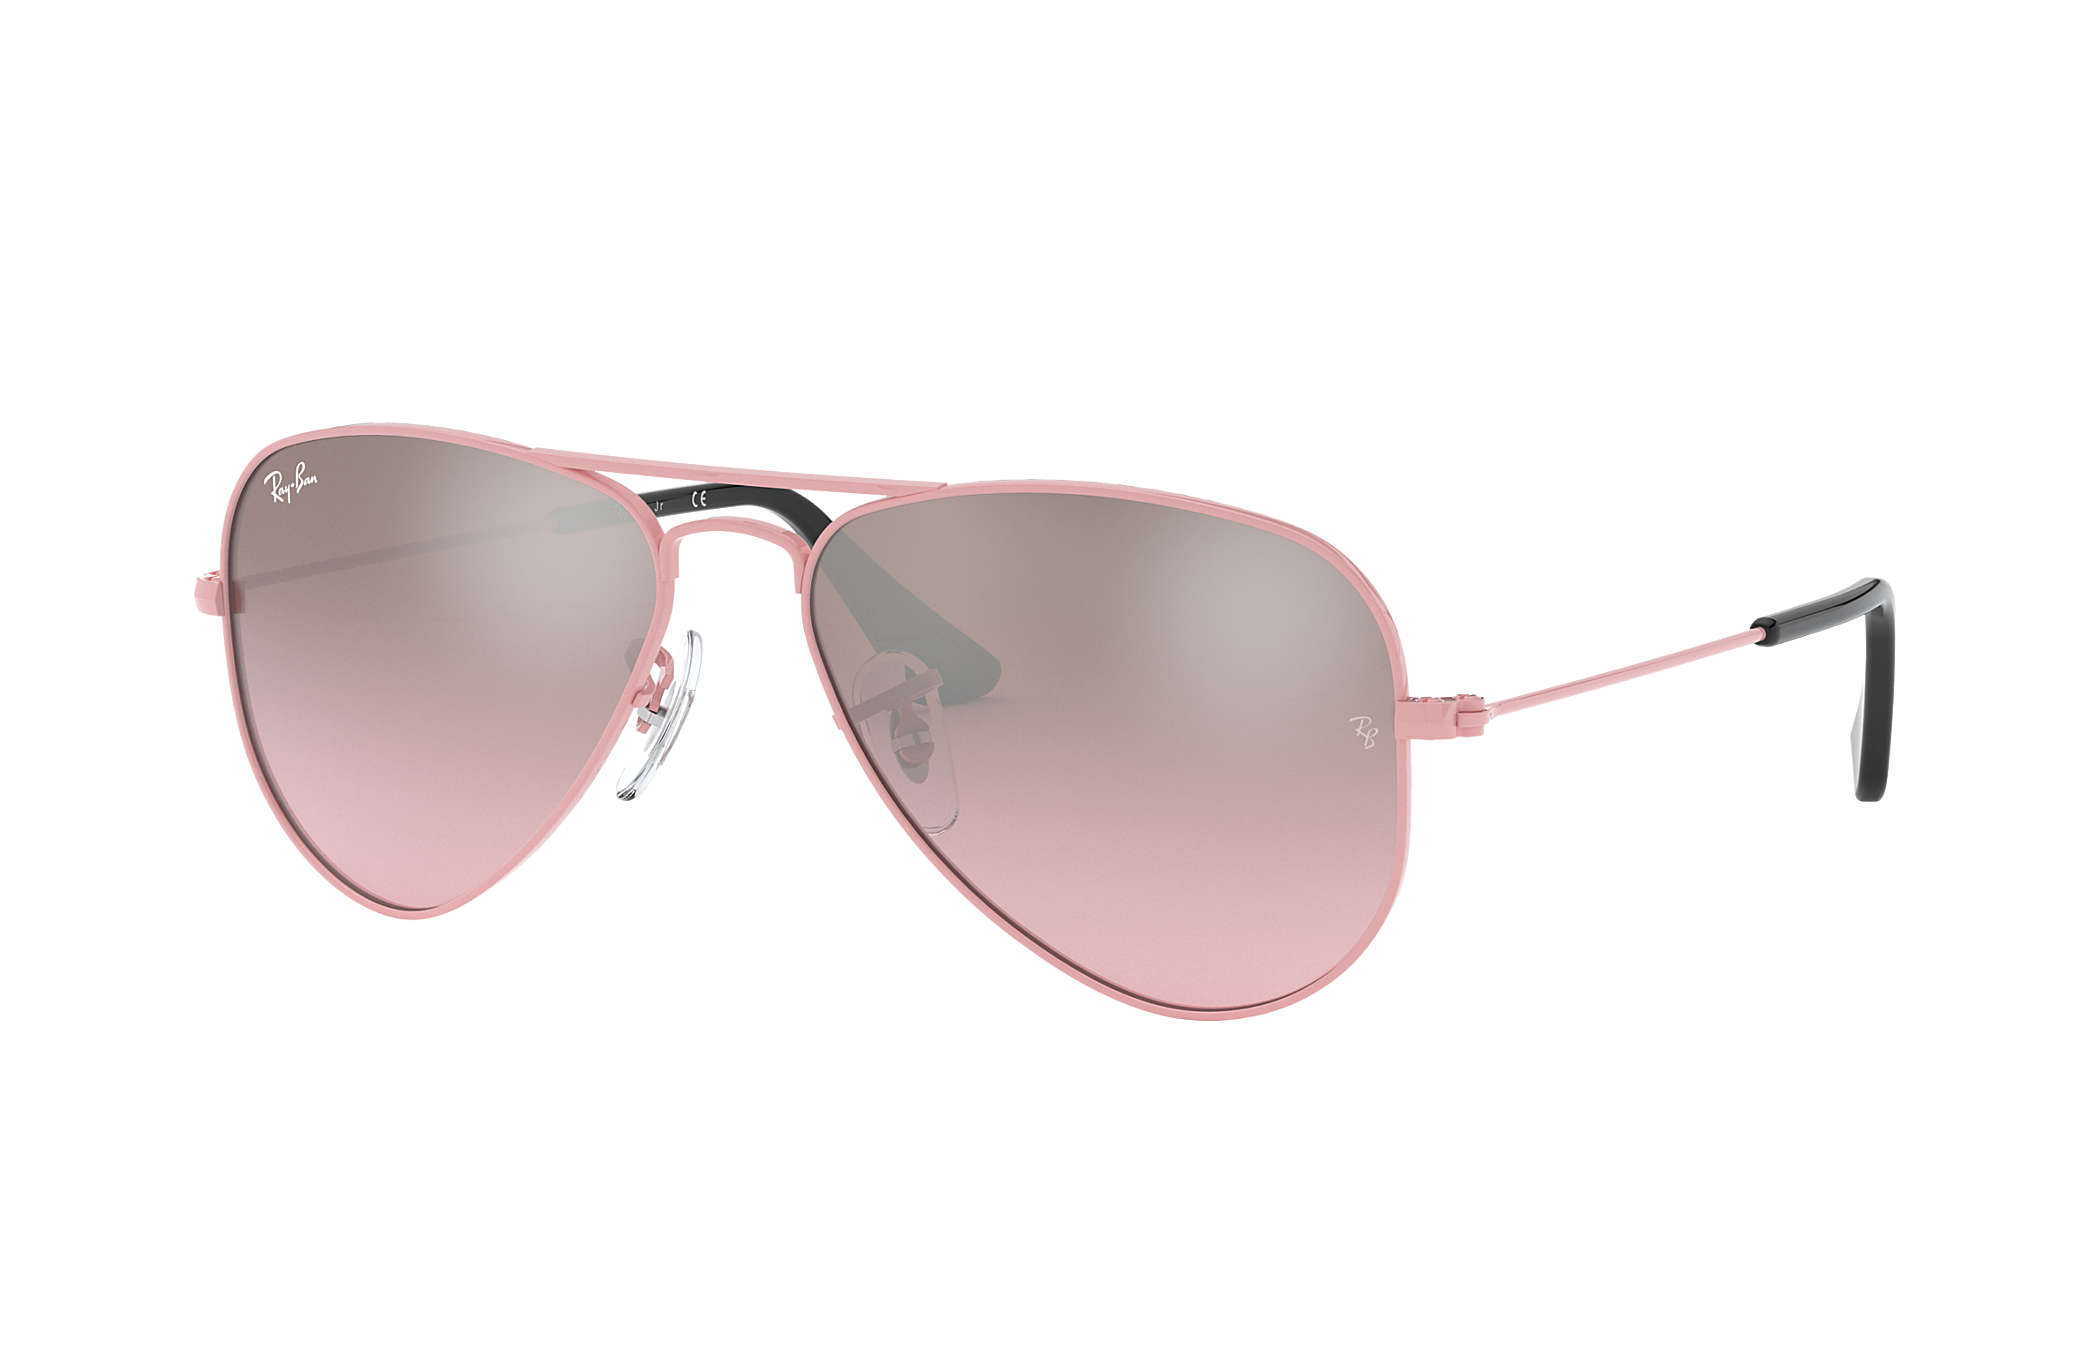 508d92d14c20e ray ban avianor rosa